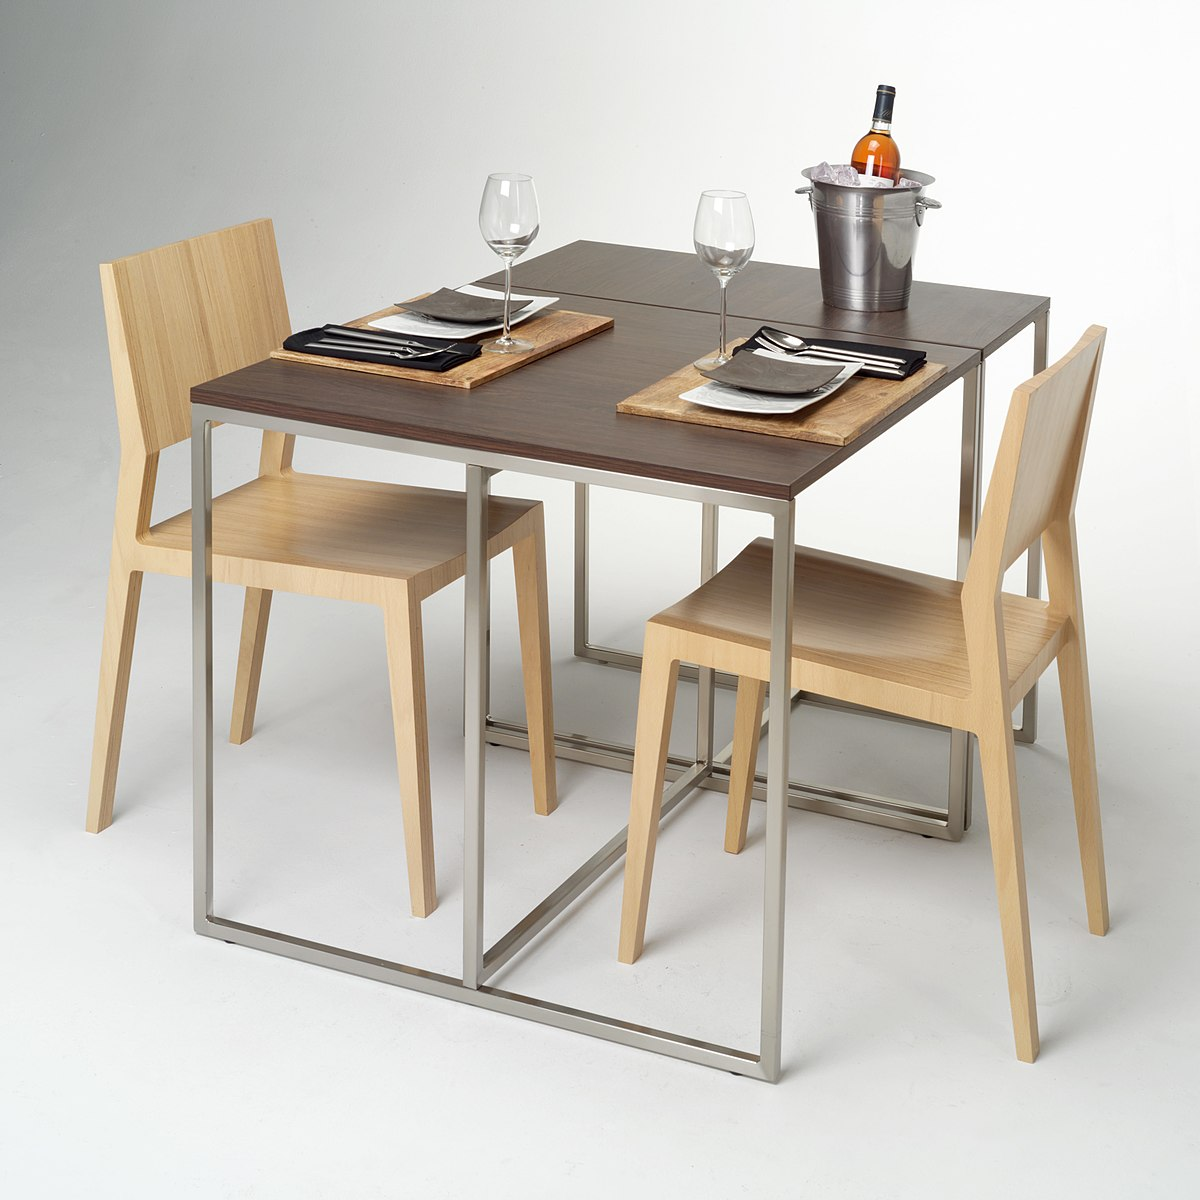 Kitchen Bar Table Amazon